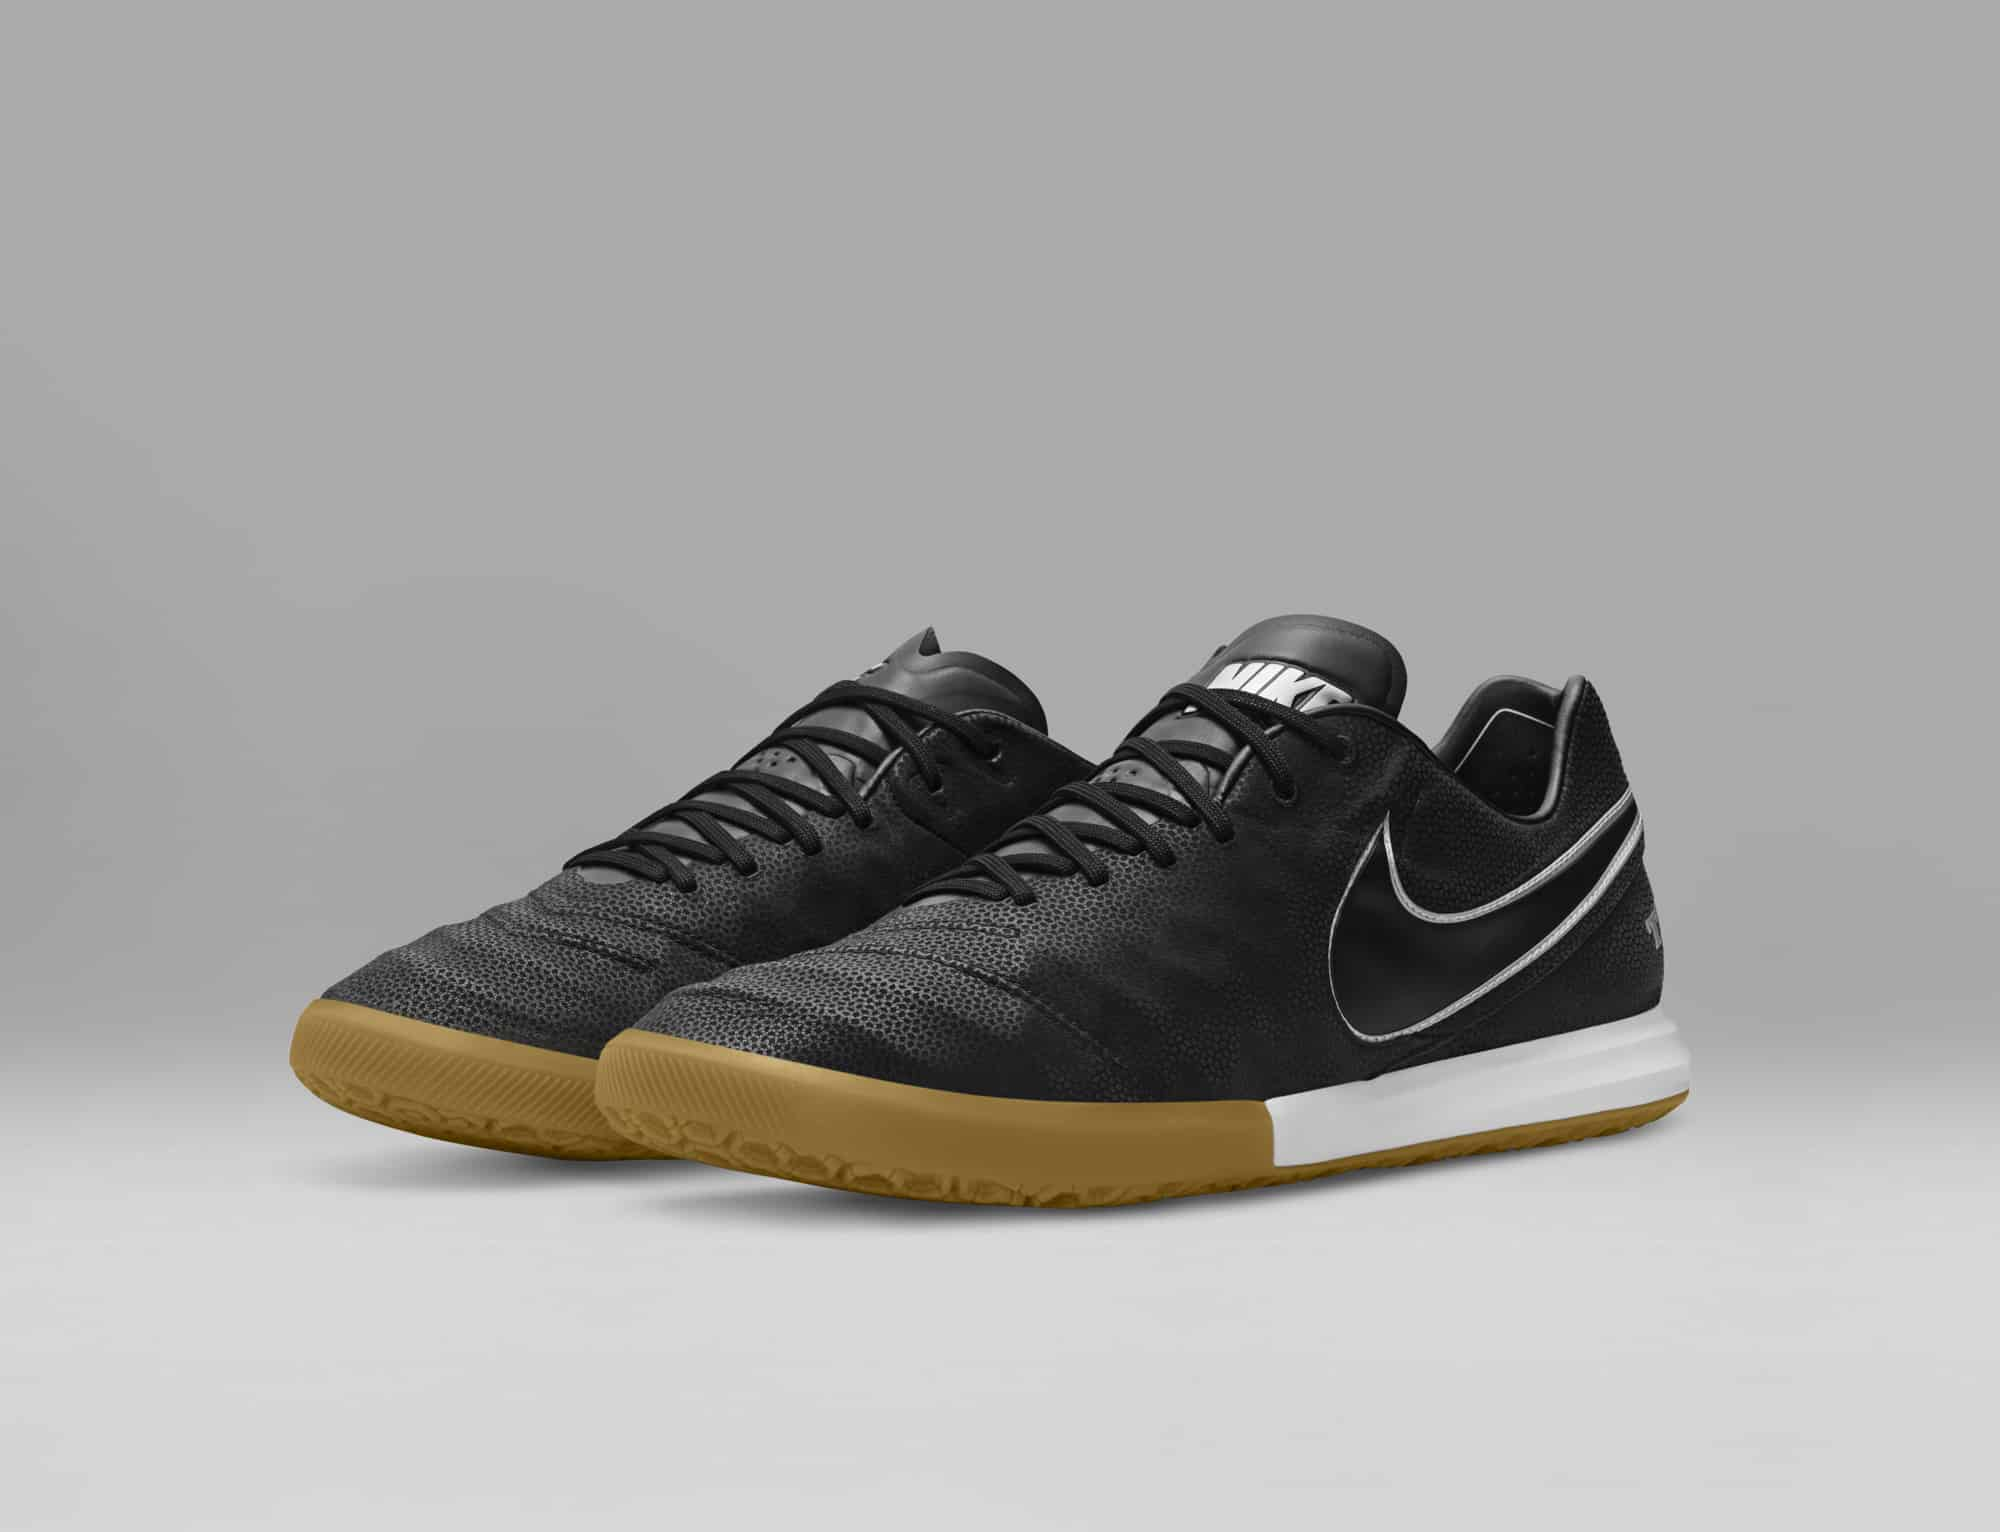 chaussures-football-nike-tiempox-tech-craft-img1